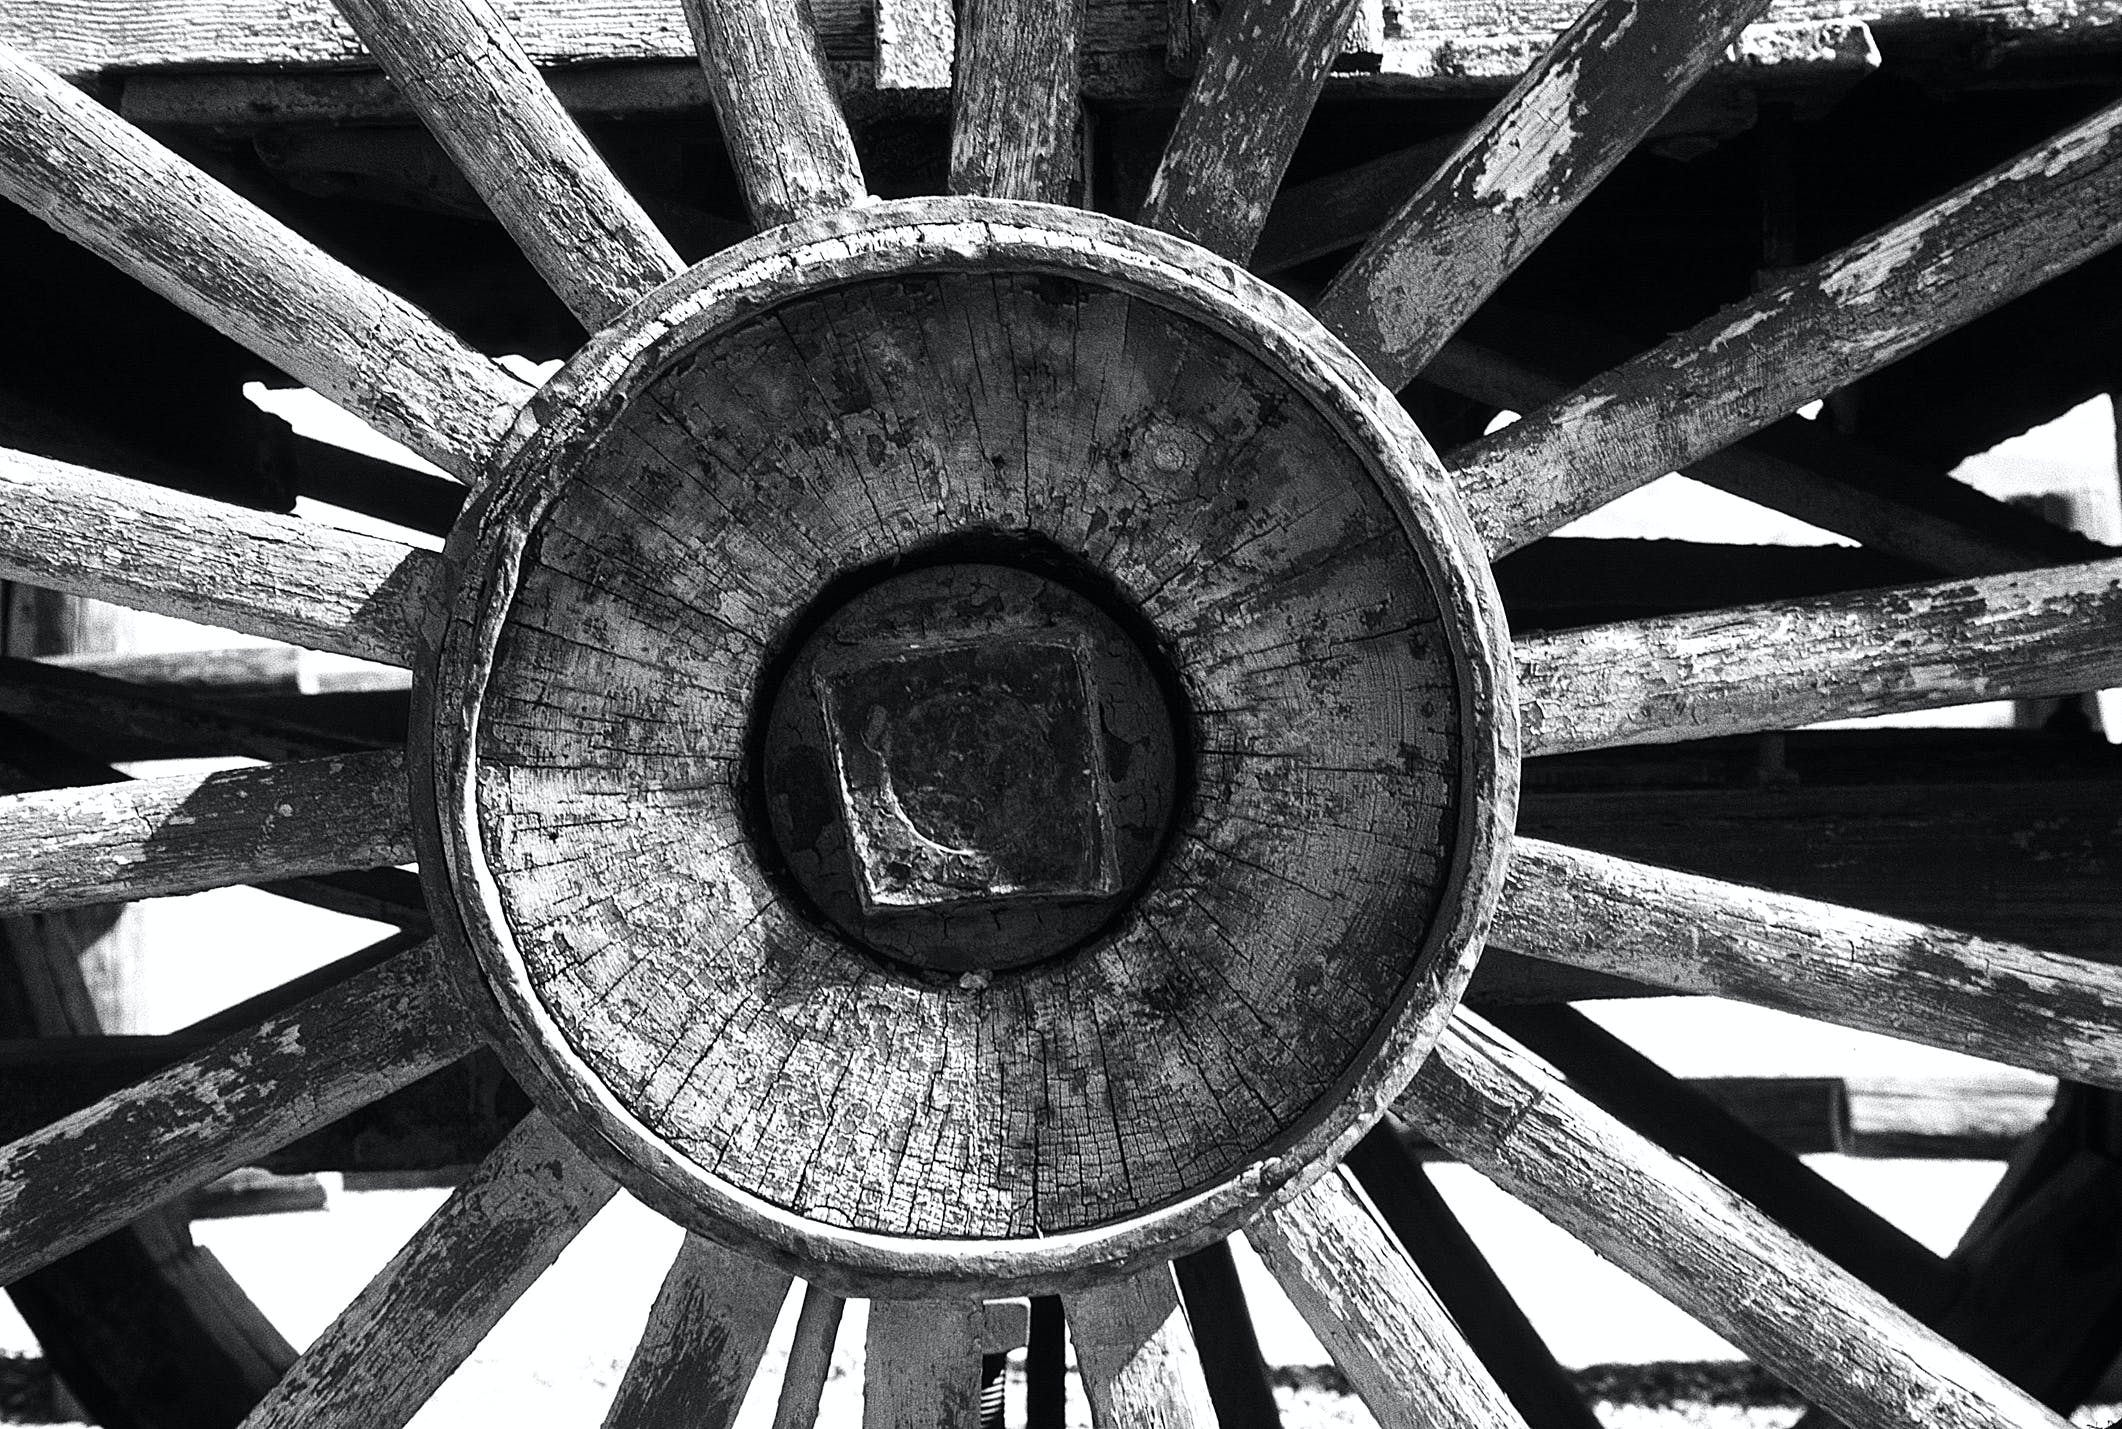 Grayscale Photography of Carriage Wheel